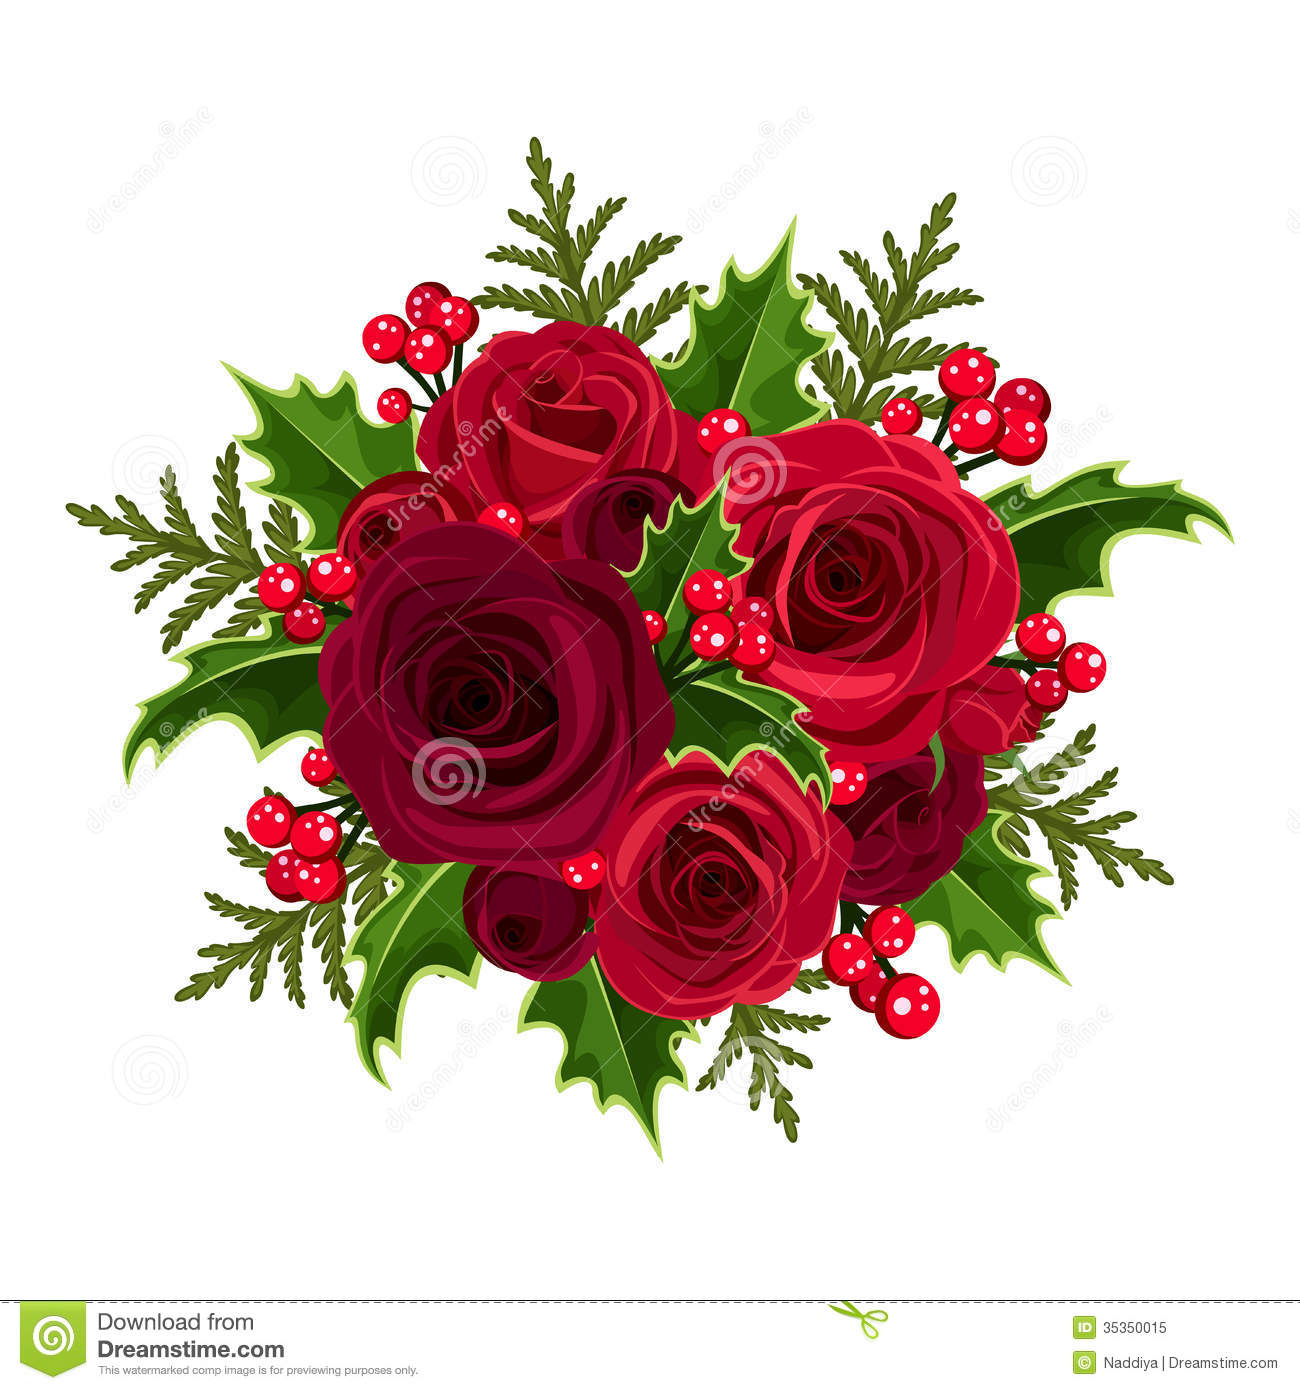 Christmas bouquet clipart 20 free Cliparts | Download ...